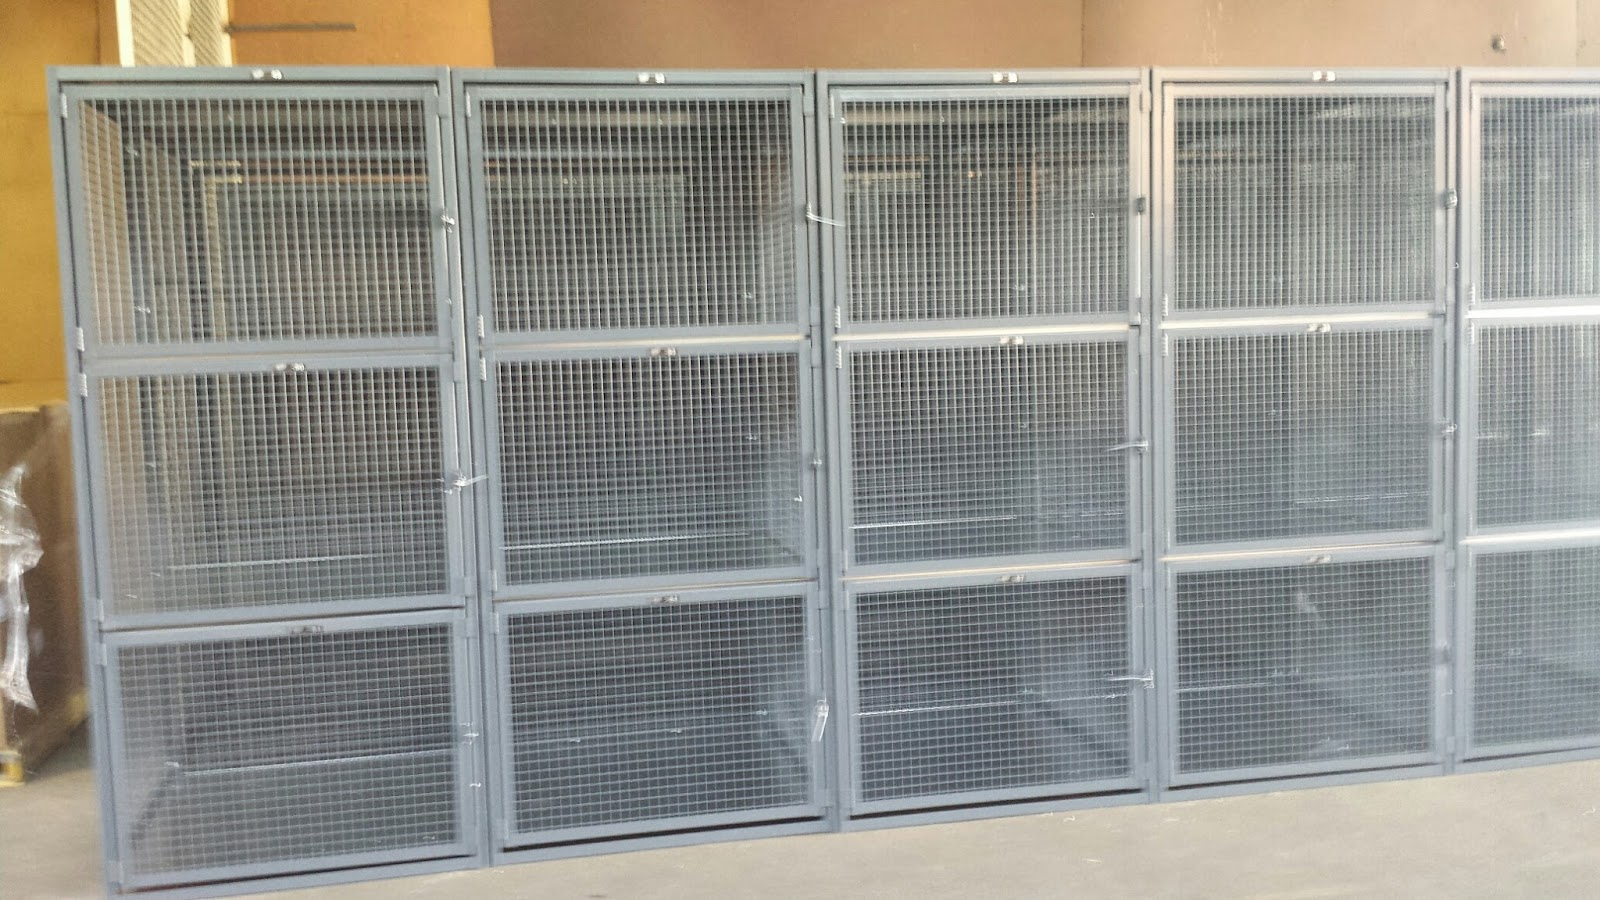 Expanded Metal Security Cages NYC | NYC Security Cages